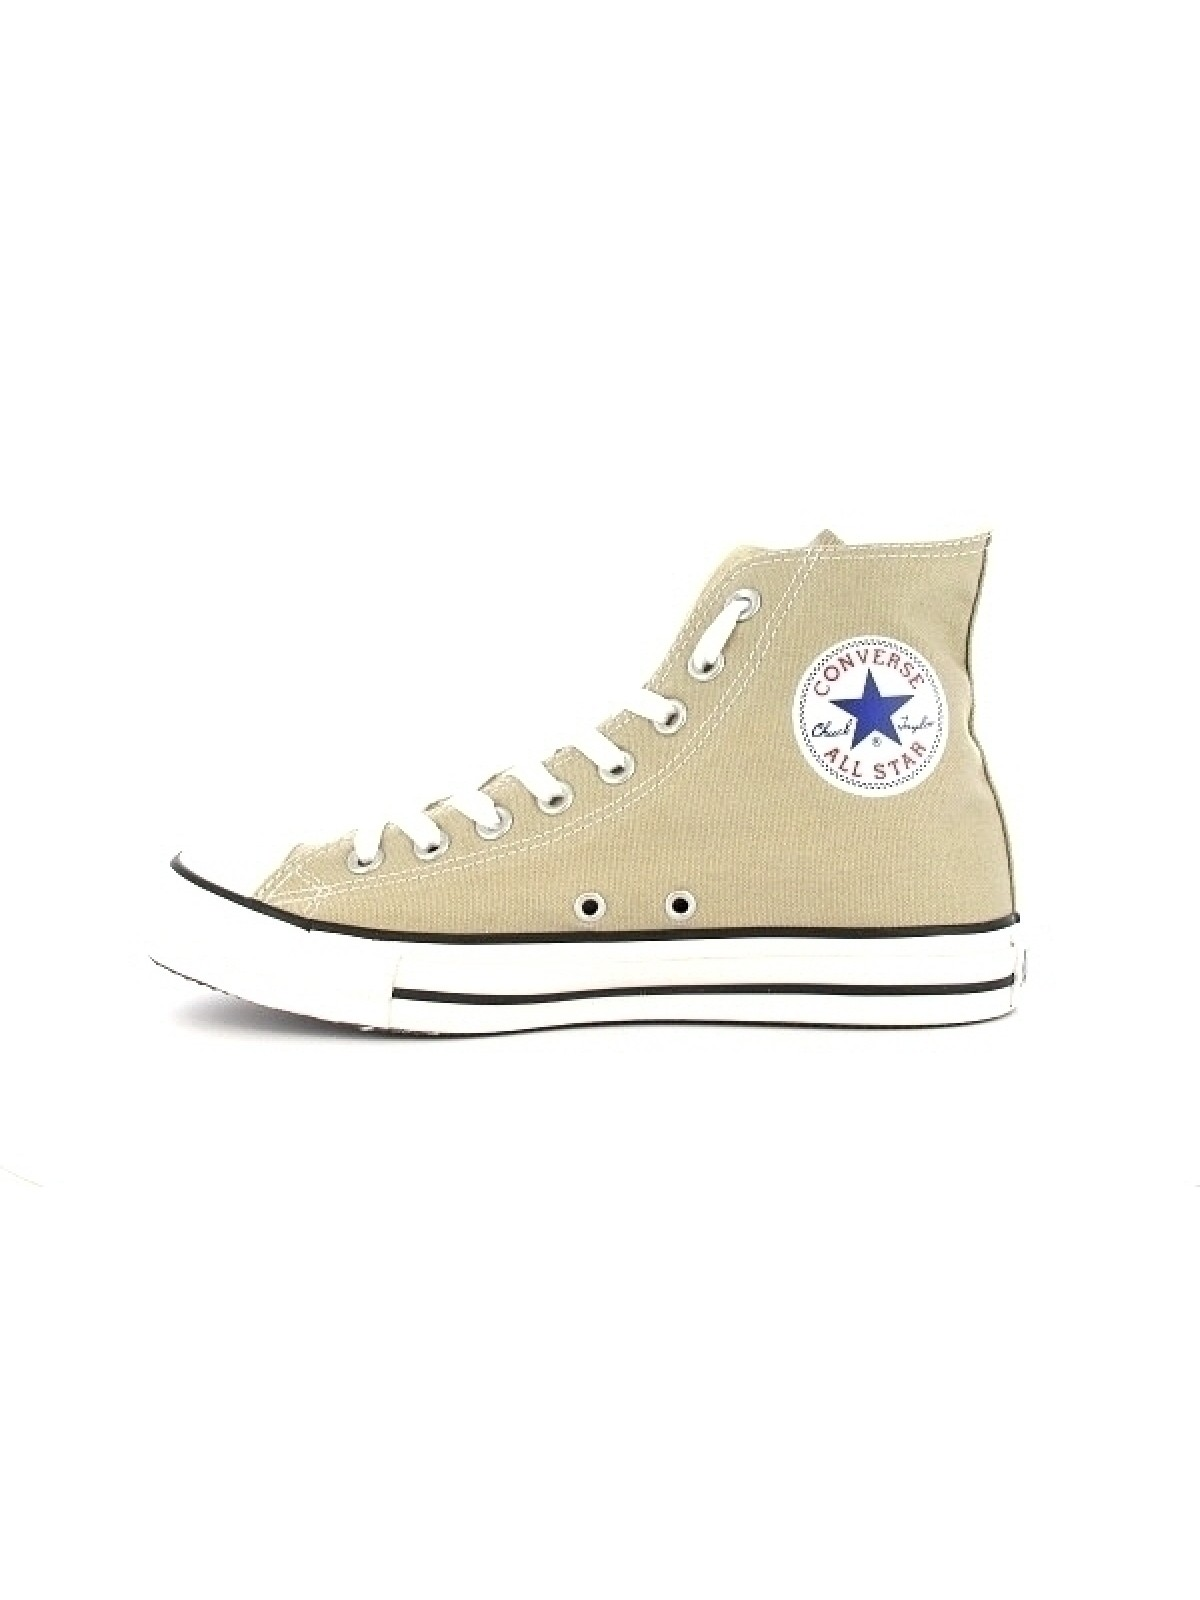 Converse Chuck Taylor all star toile taupe